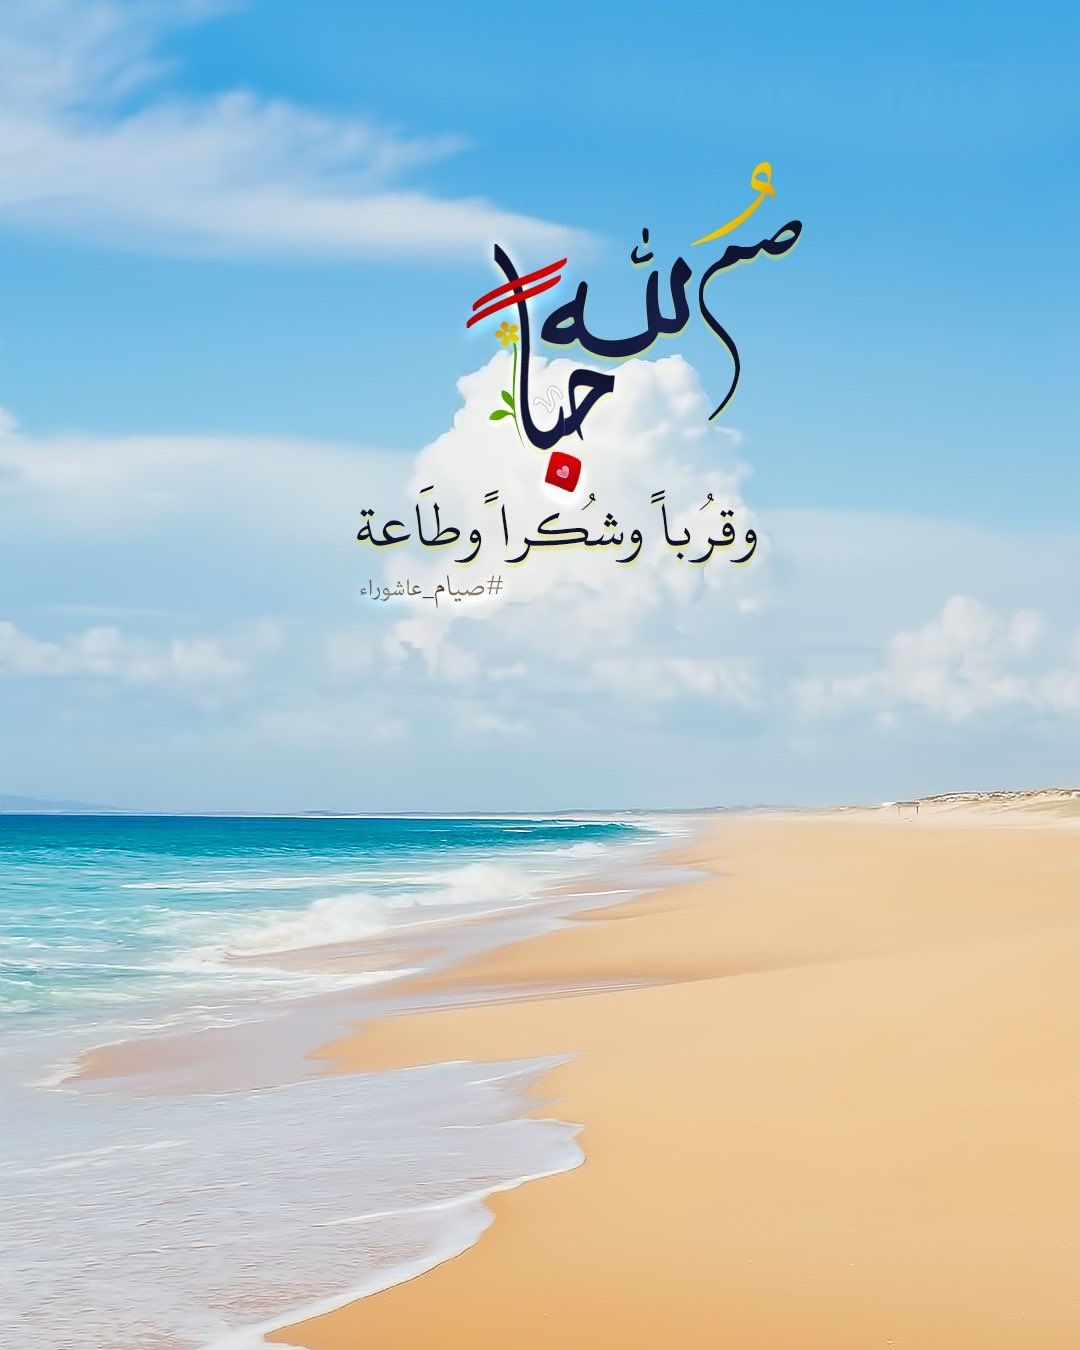 Pin By الأثر الجميل On نصائح Islamic Pictures Good Morning Greetings Home Decor Decals